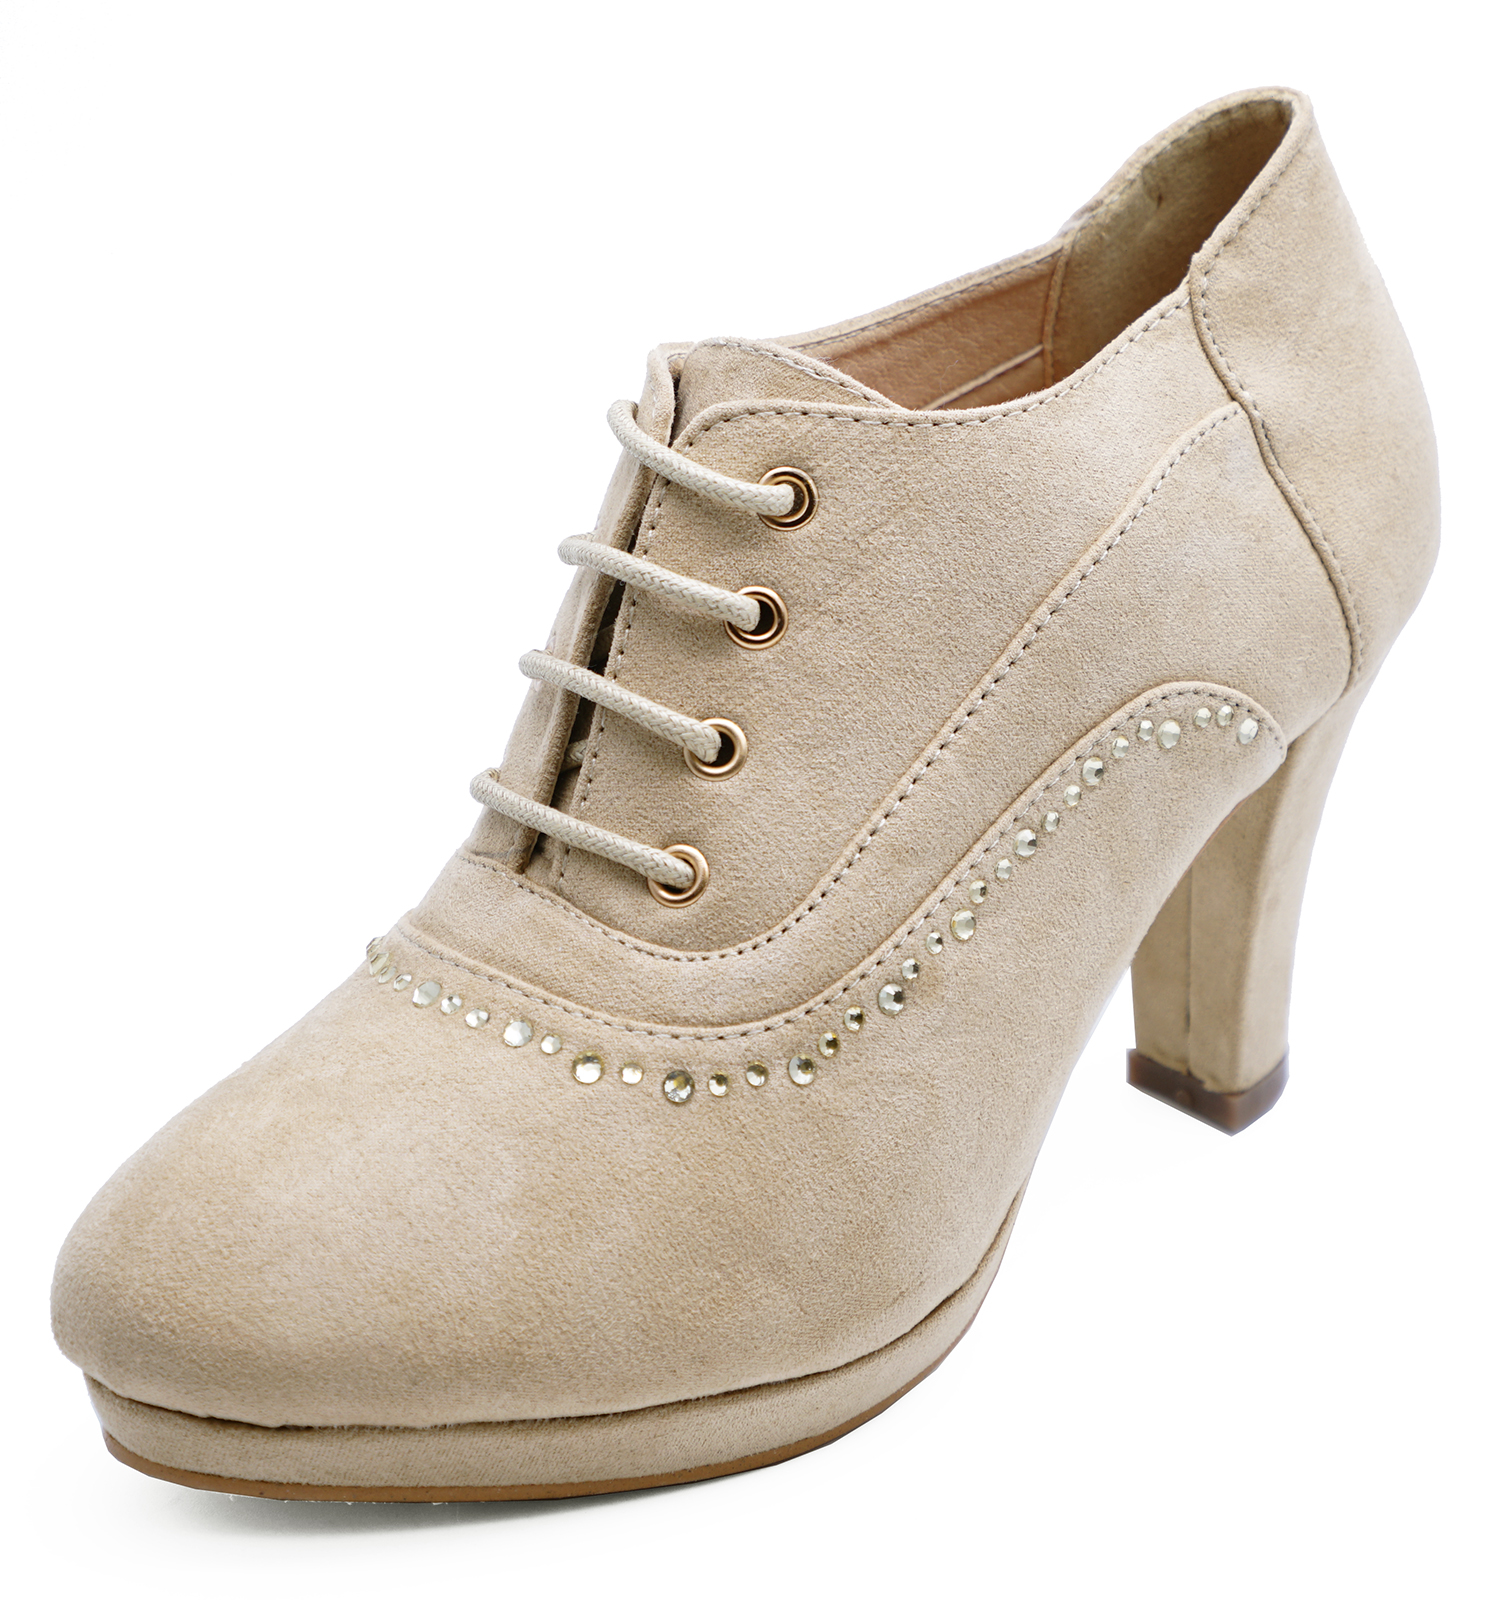 WOMENS LADIES HIGH HEEL WEDGE ZIP CASUAL SMART SLOUCH RUCHED ANKLE BOOTS SIZE